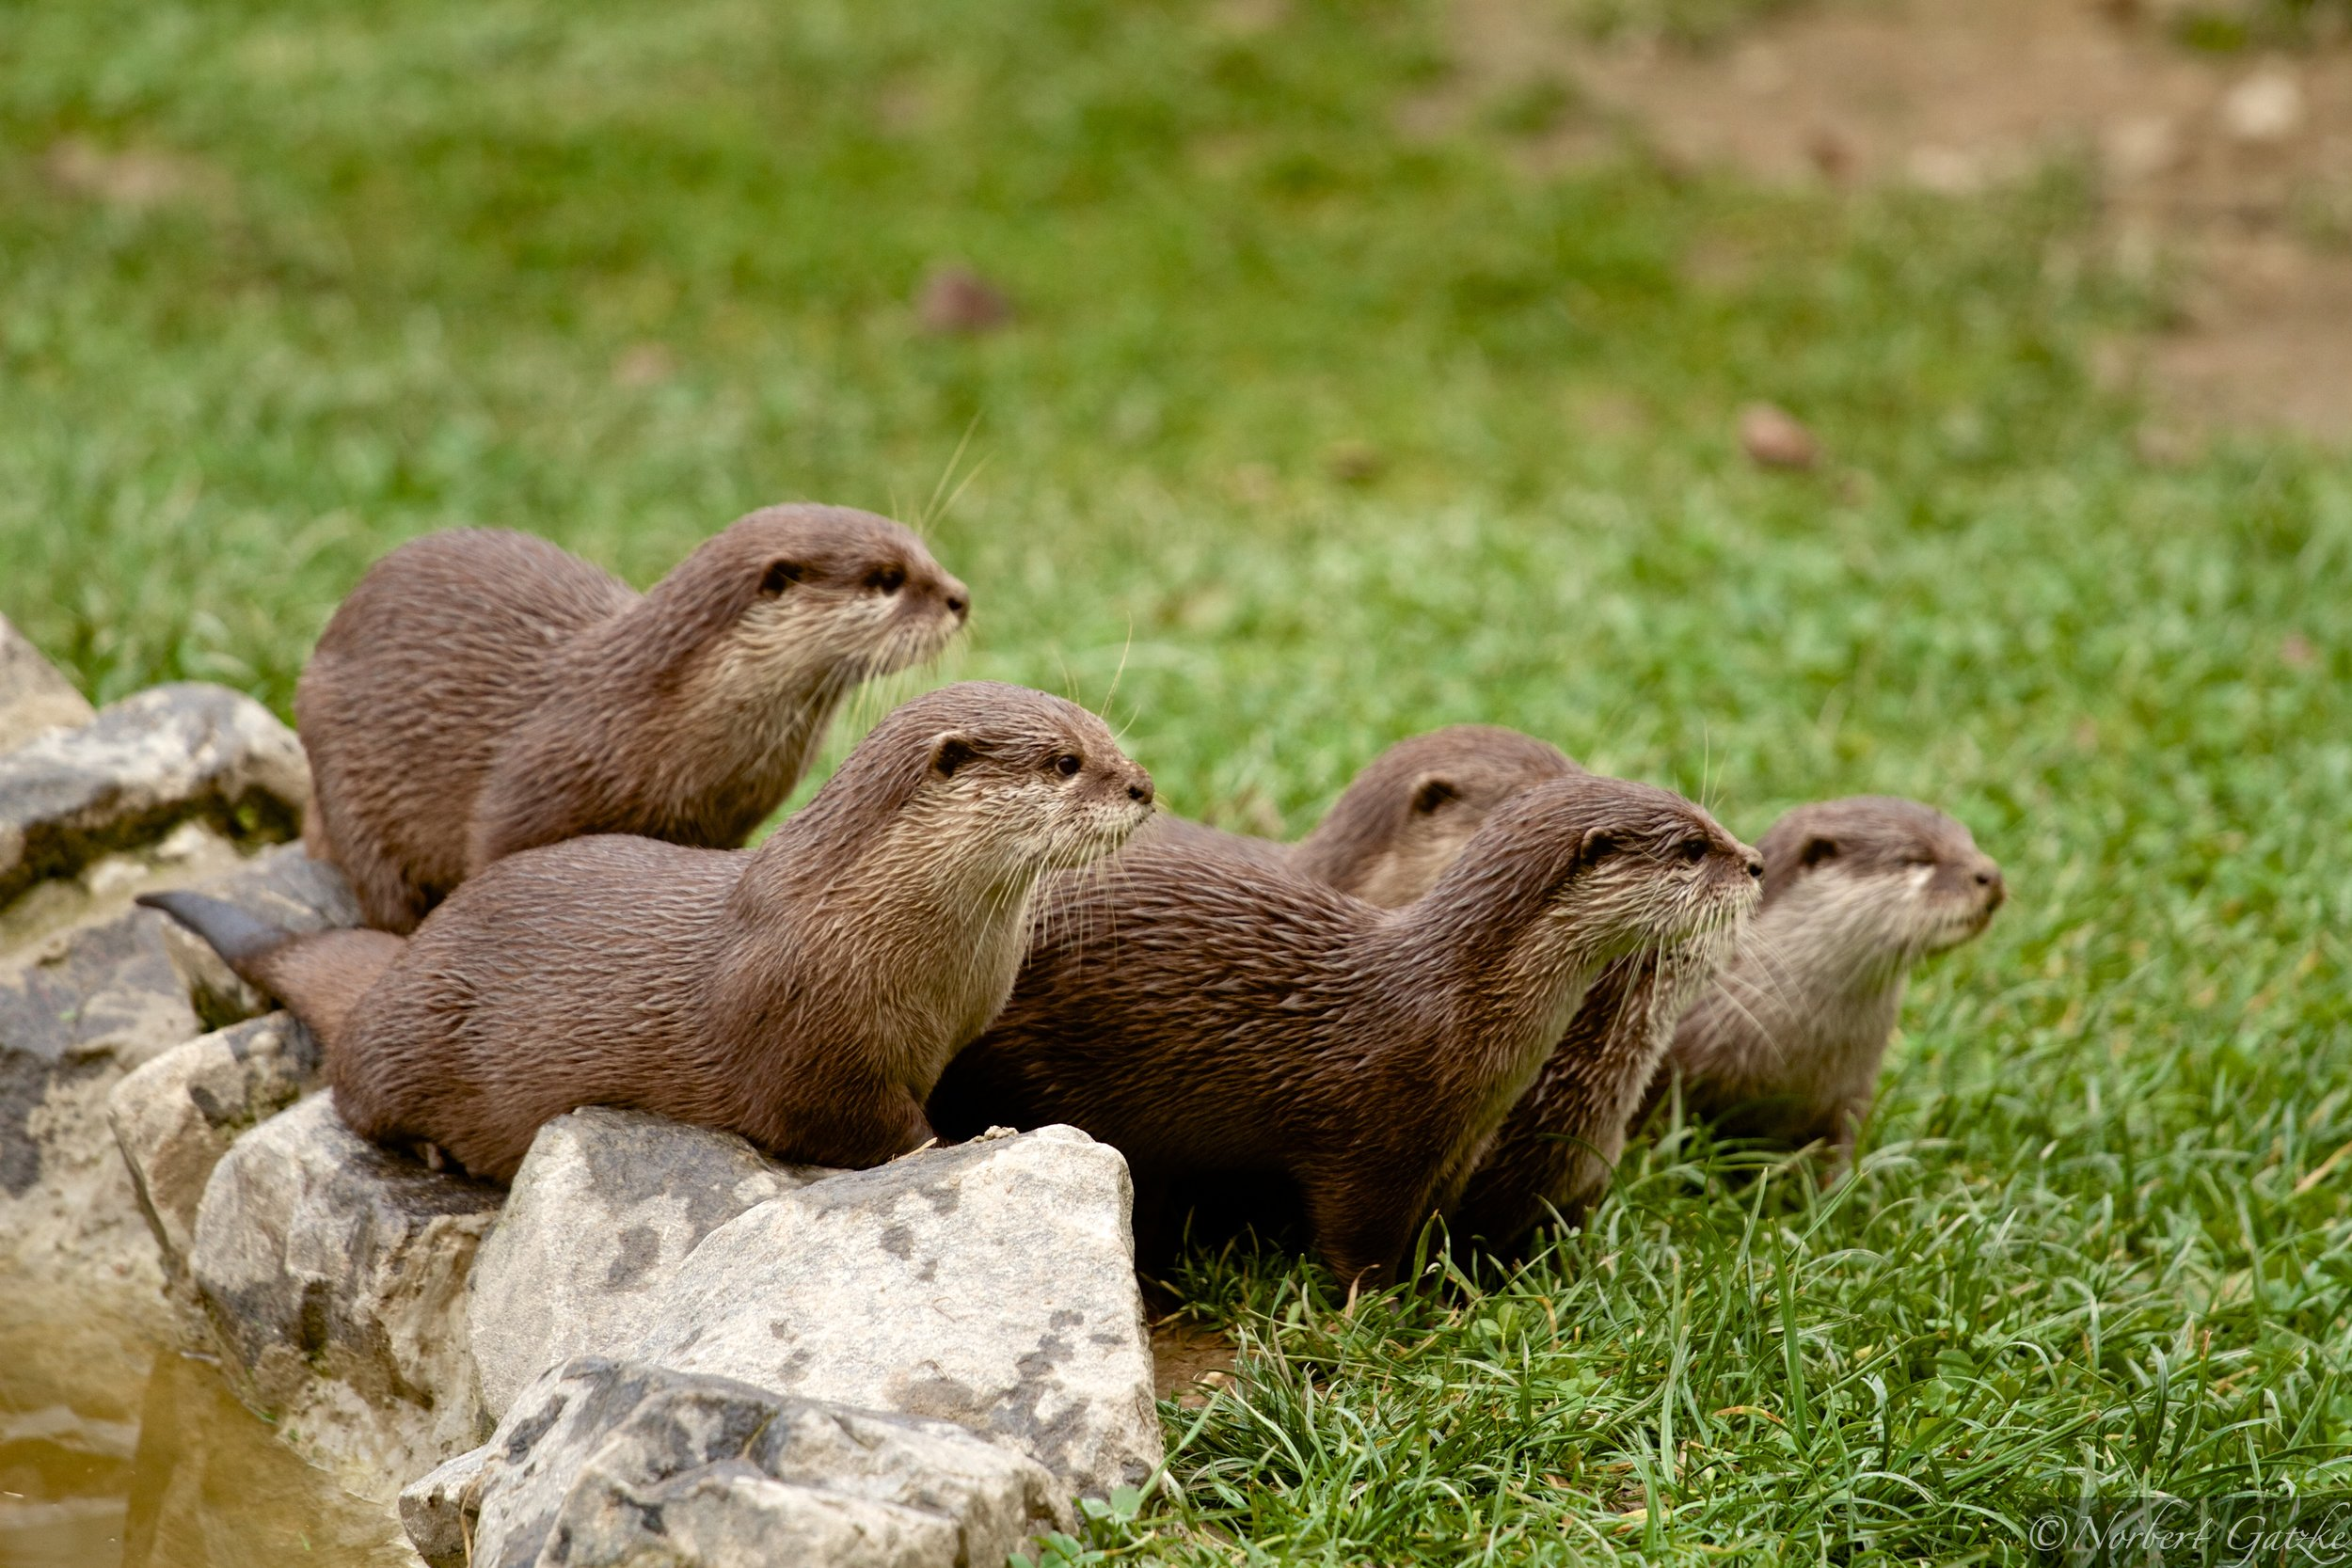 Otters Are Intently Watching Something